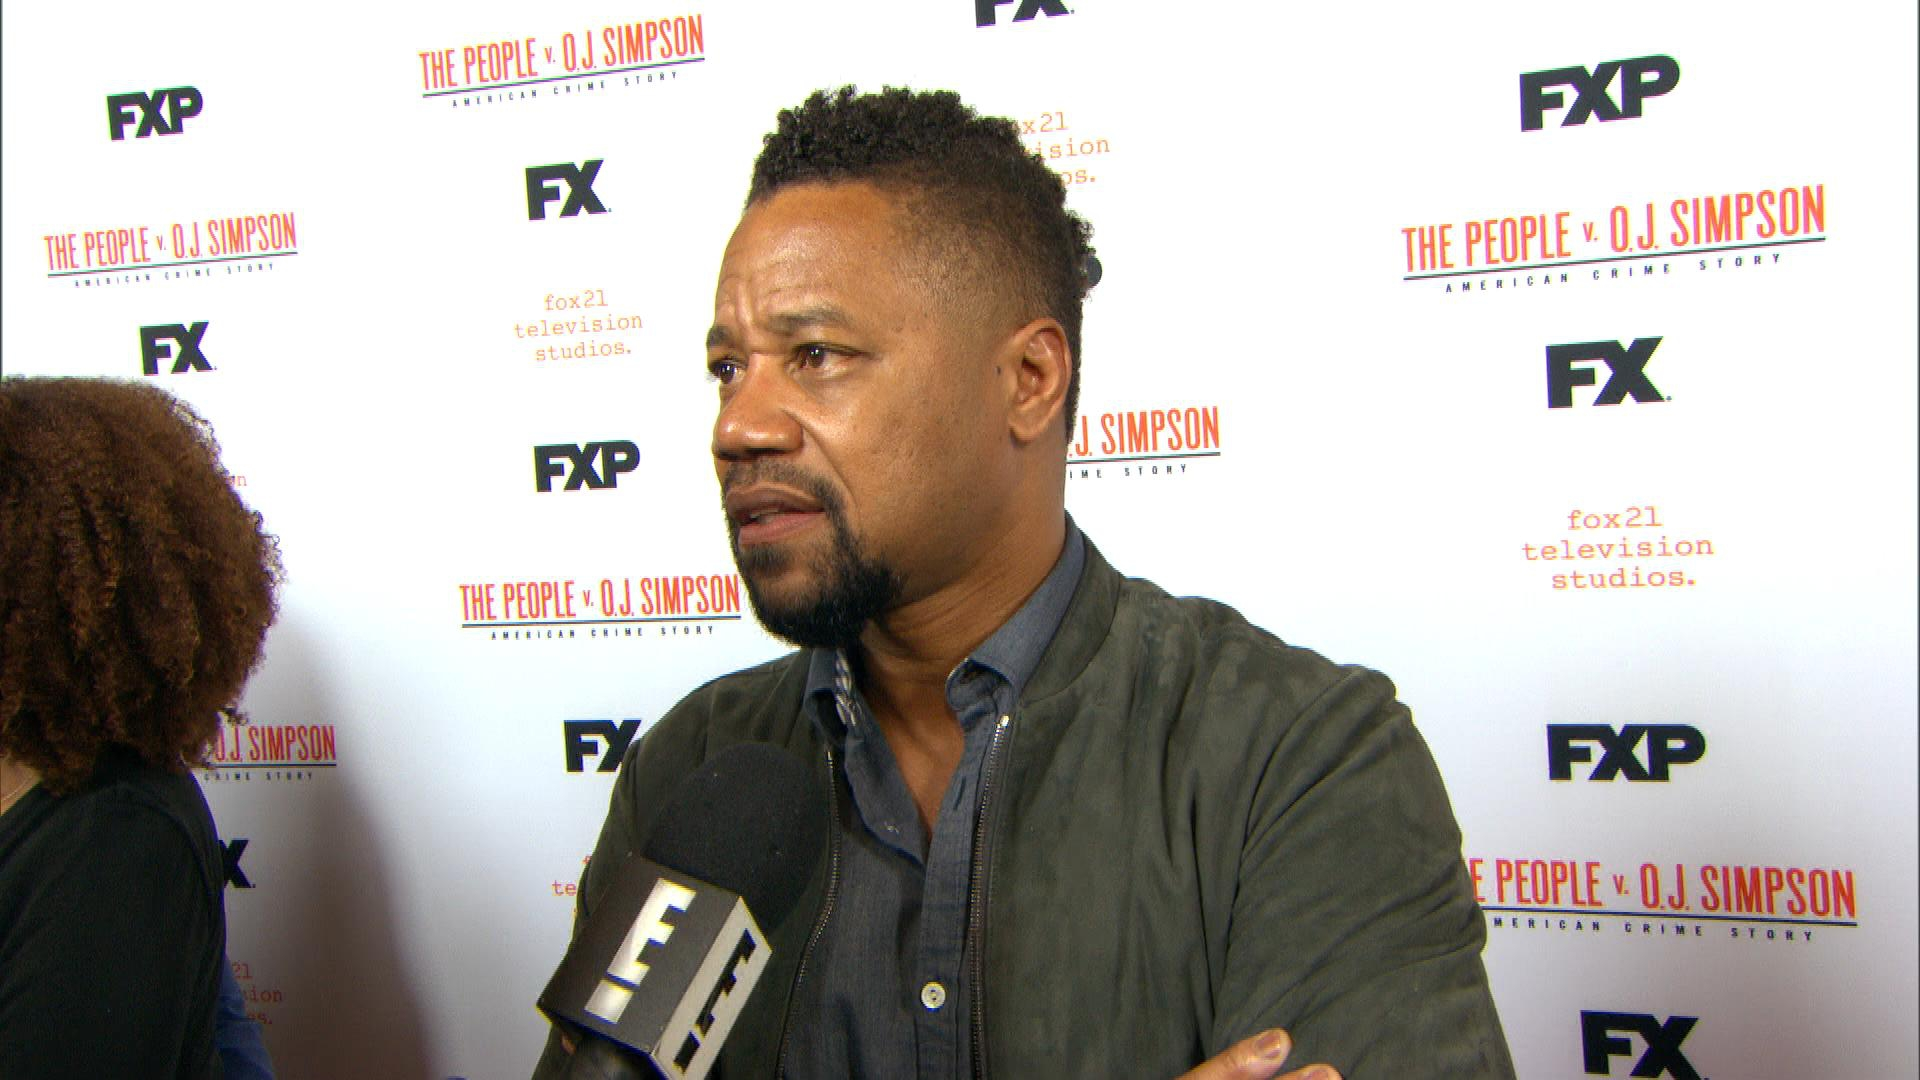 'People V. O.J. Simpson' Cast on the Show's Lessons